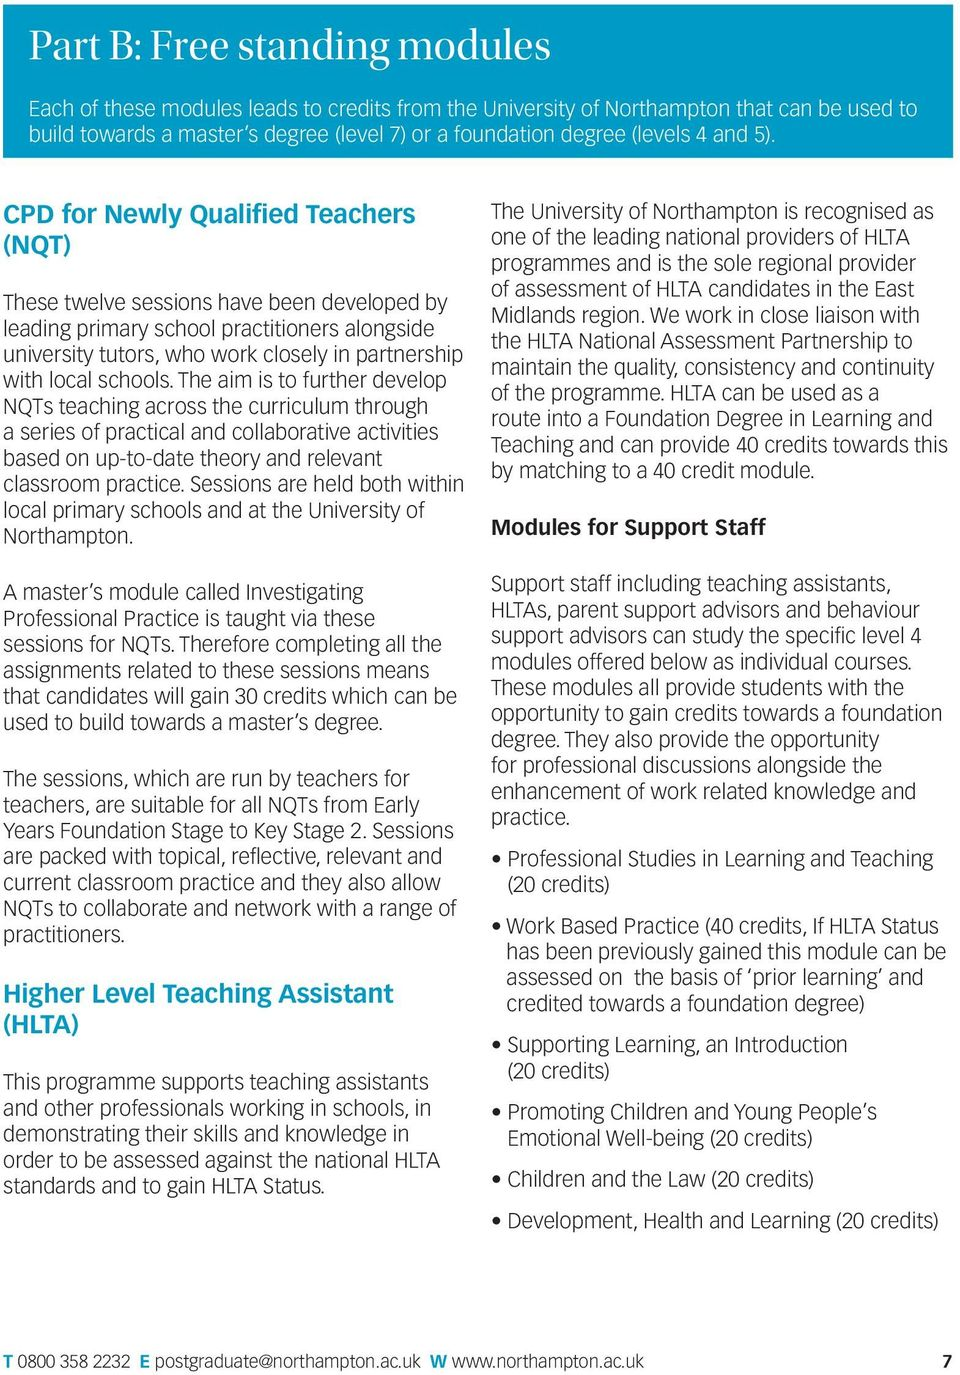 CPD for Newly Qualified Teachers (NQT) These twelve sessions have been developed by leading primary school practitioners alongside university tutors, who work closely in partnership with local